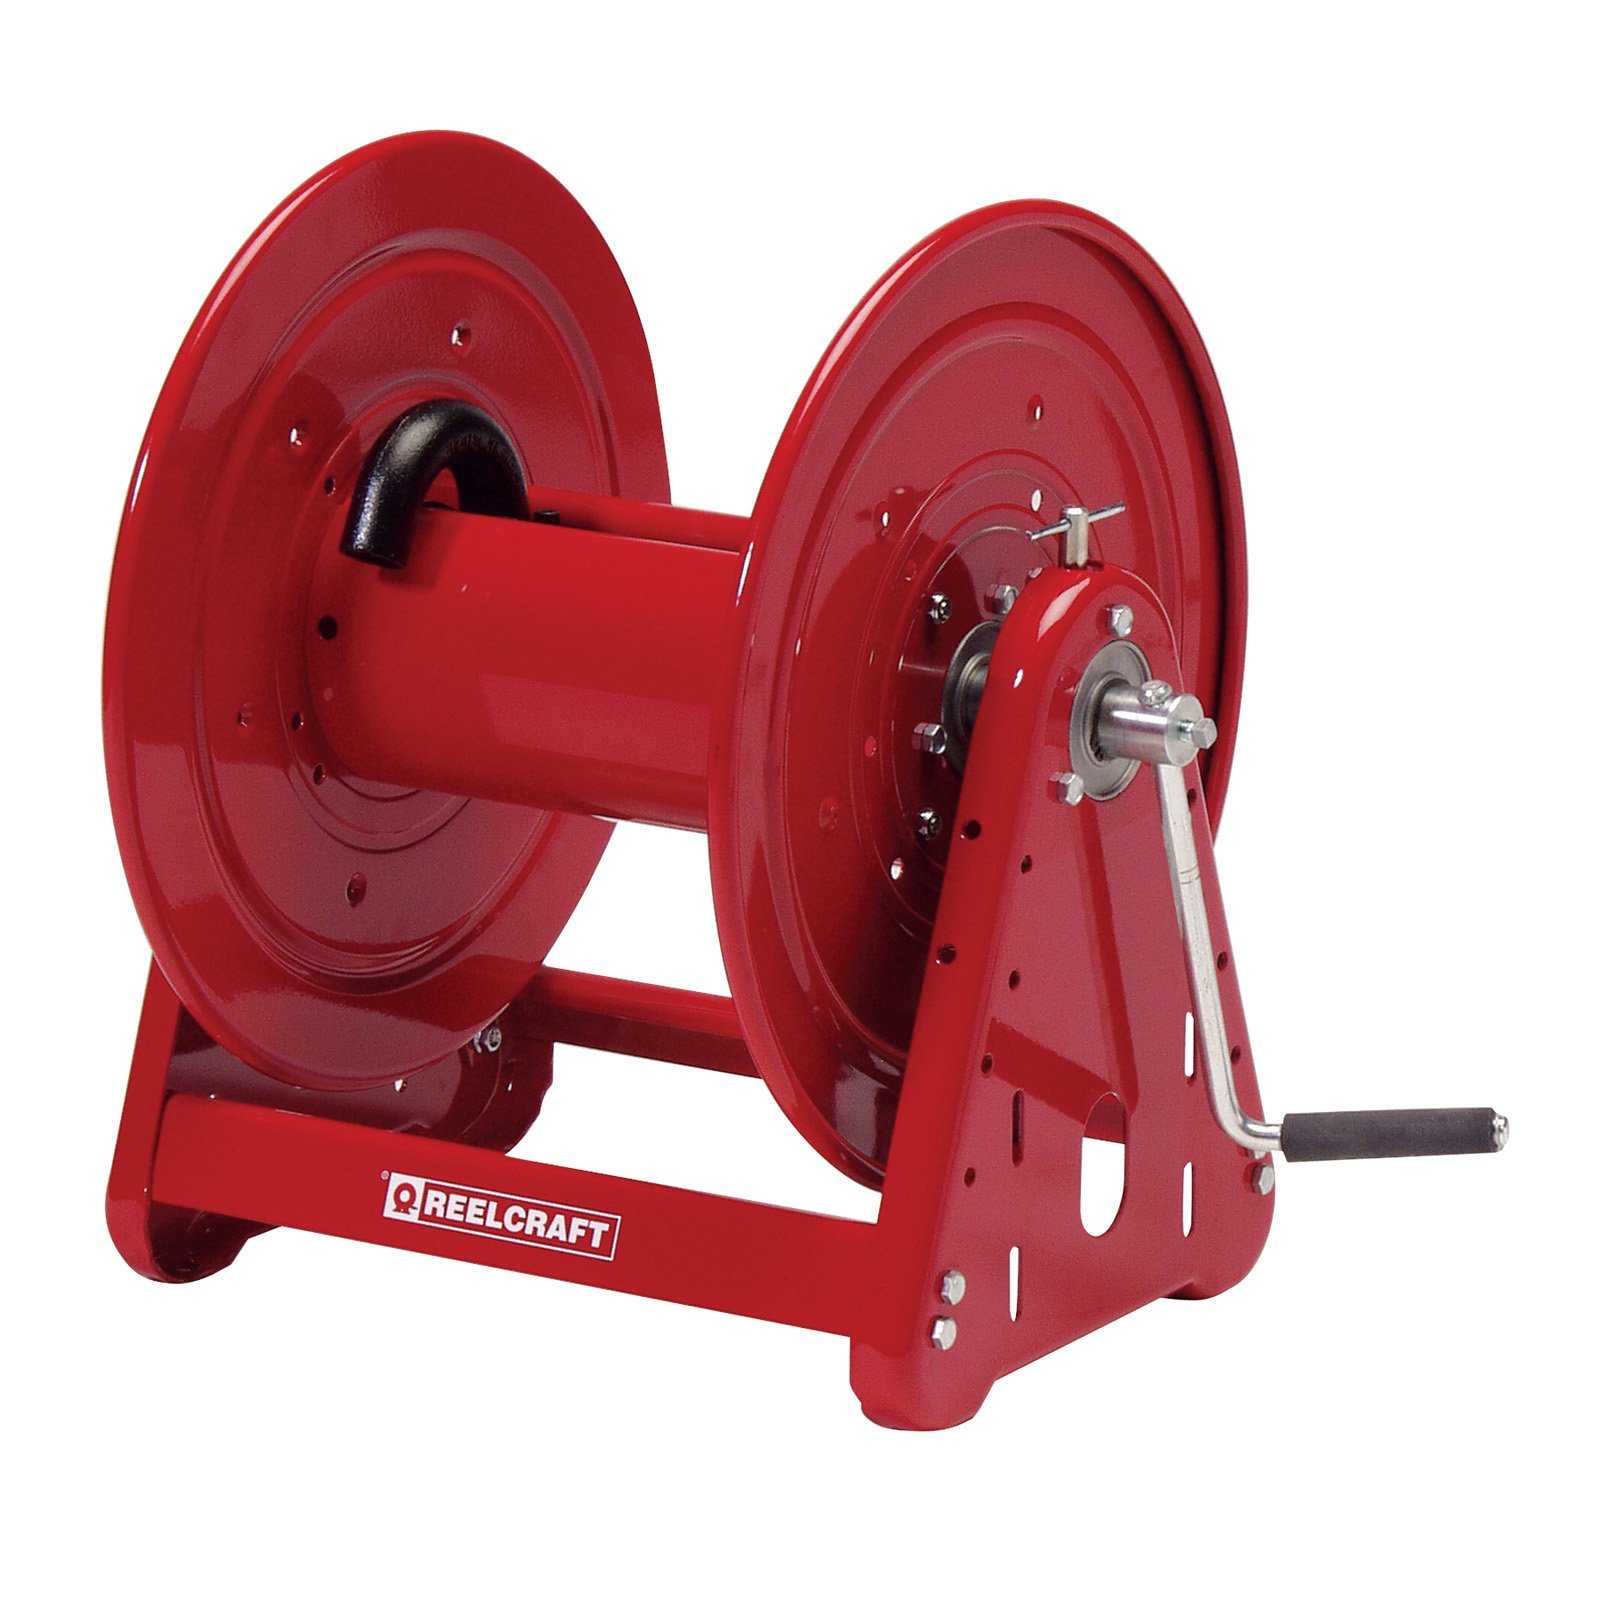 Reelcraft Heavy Duty Hand Crank 3 4 in. Hose Reel 100 ft. by Reelcraft